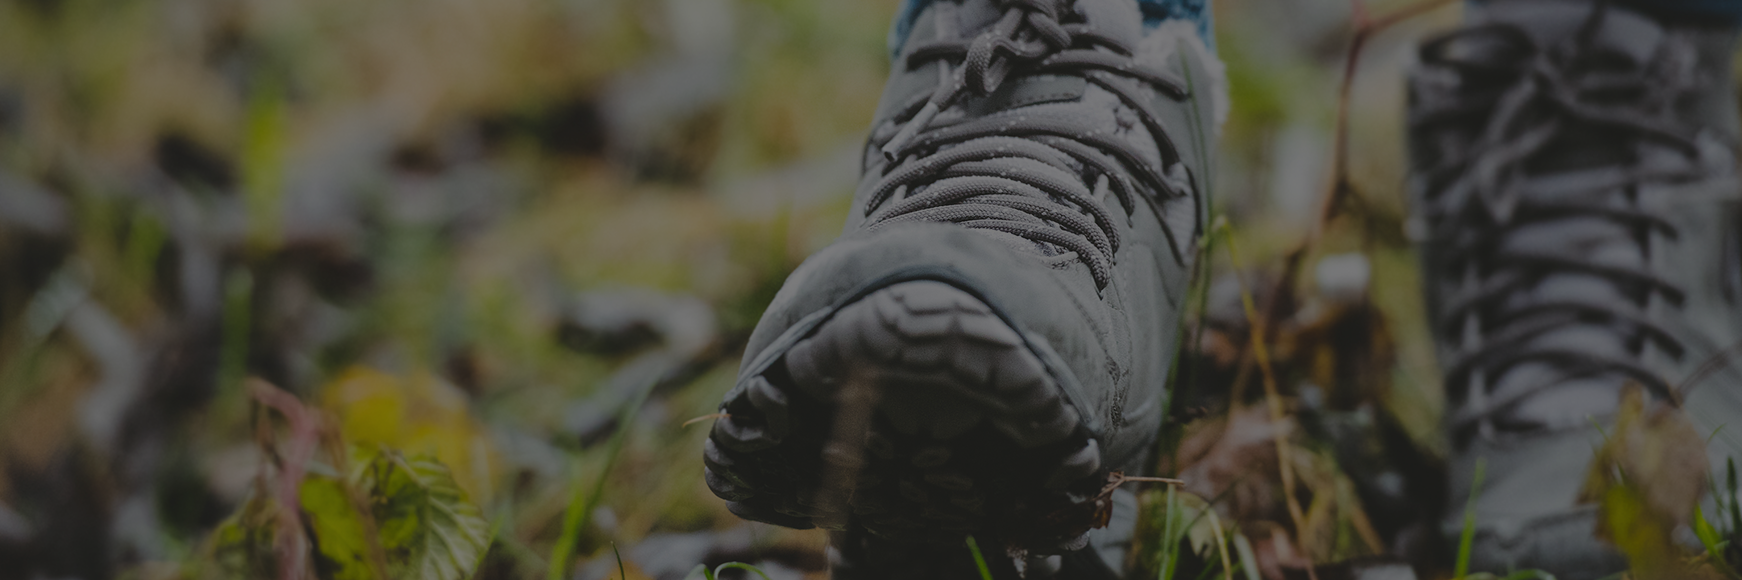 d525111795f Choosing the right walking boots | OS GetOutside